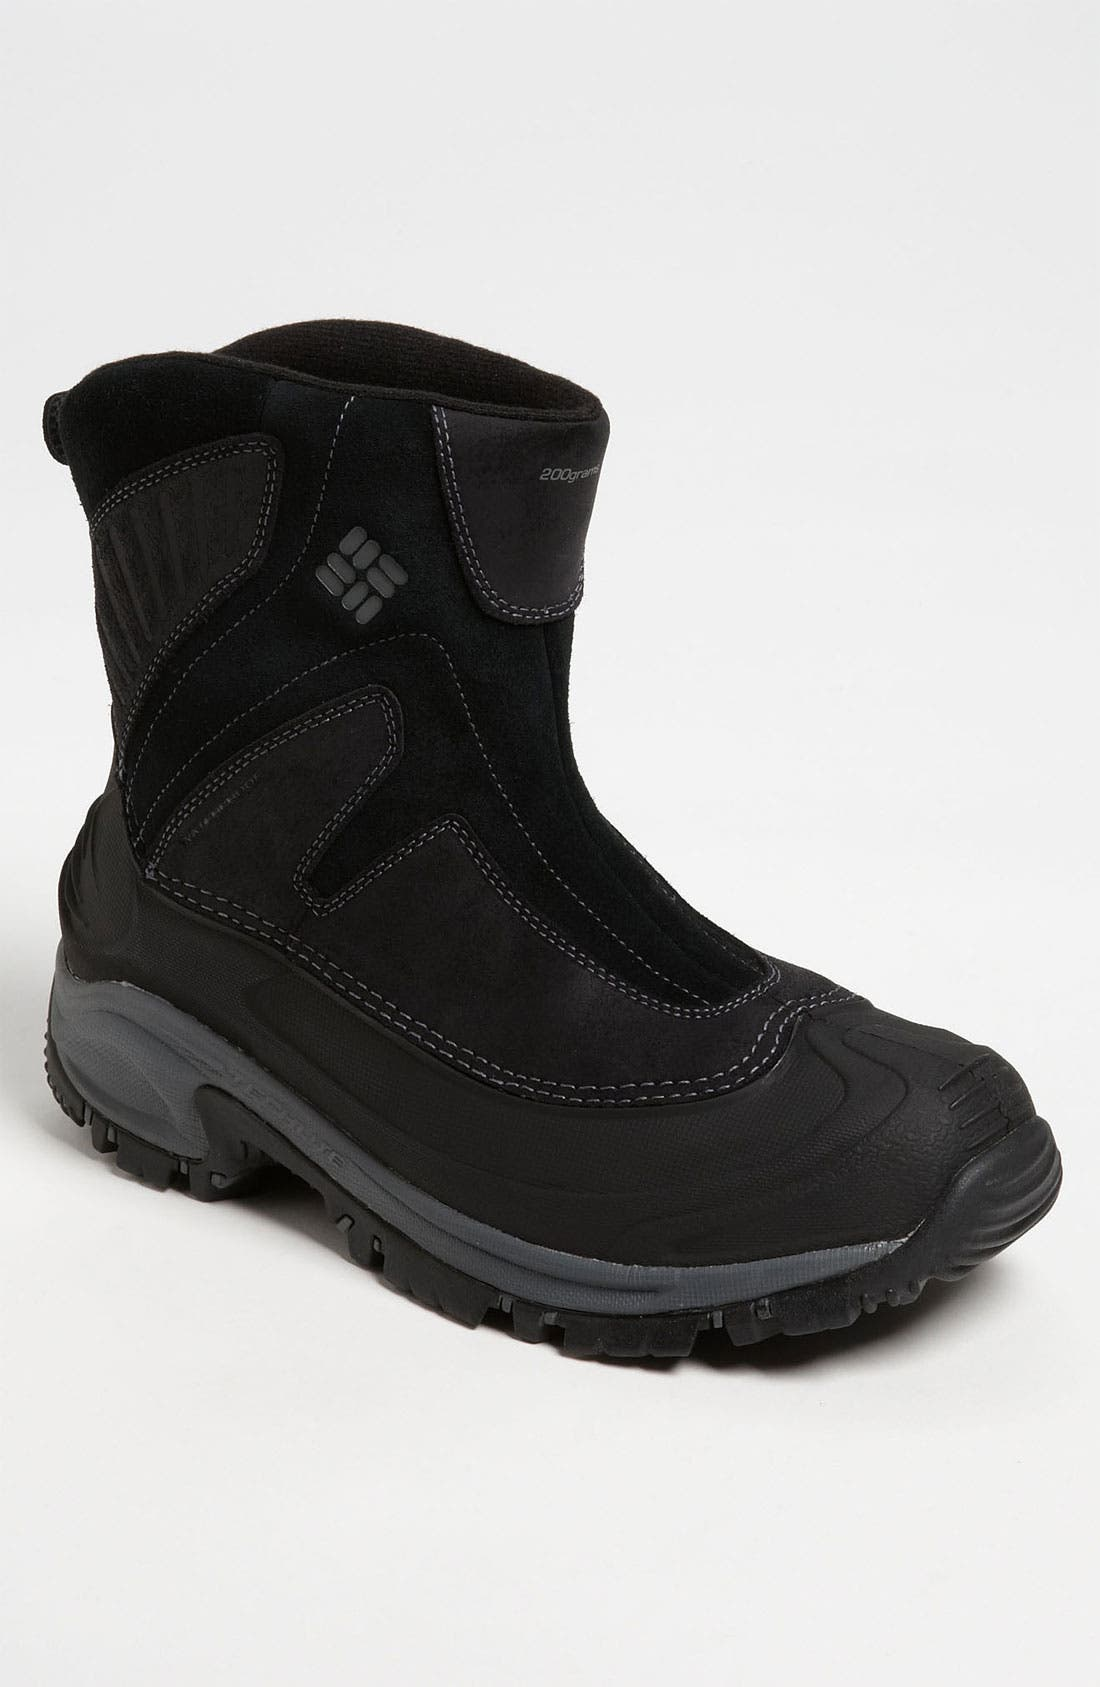 Alternate Image 1 Selected - Columbia 'SnowTrek' Pull-On Boot (Online Only)